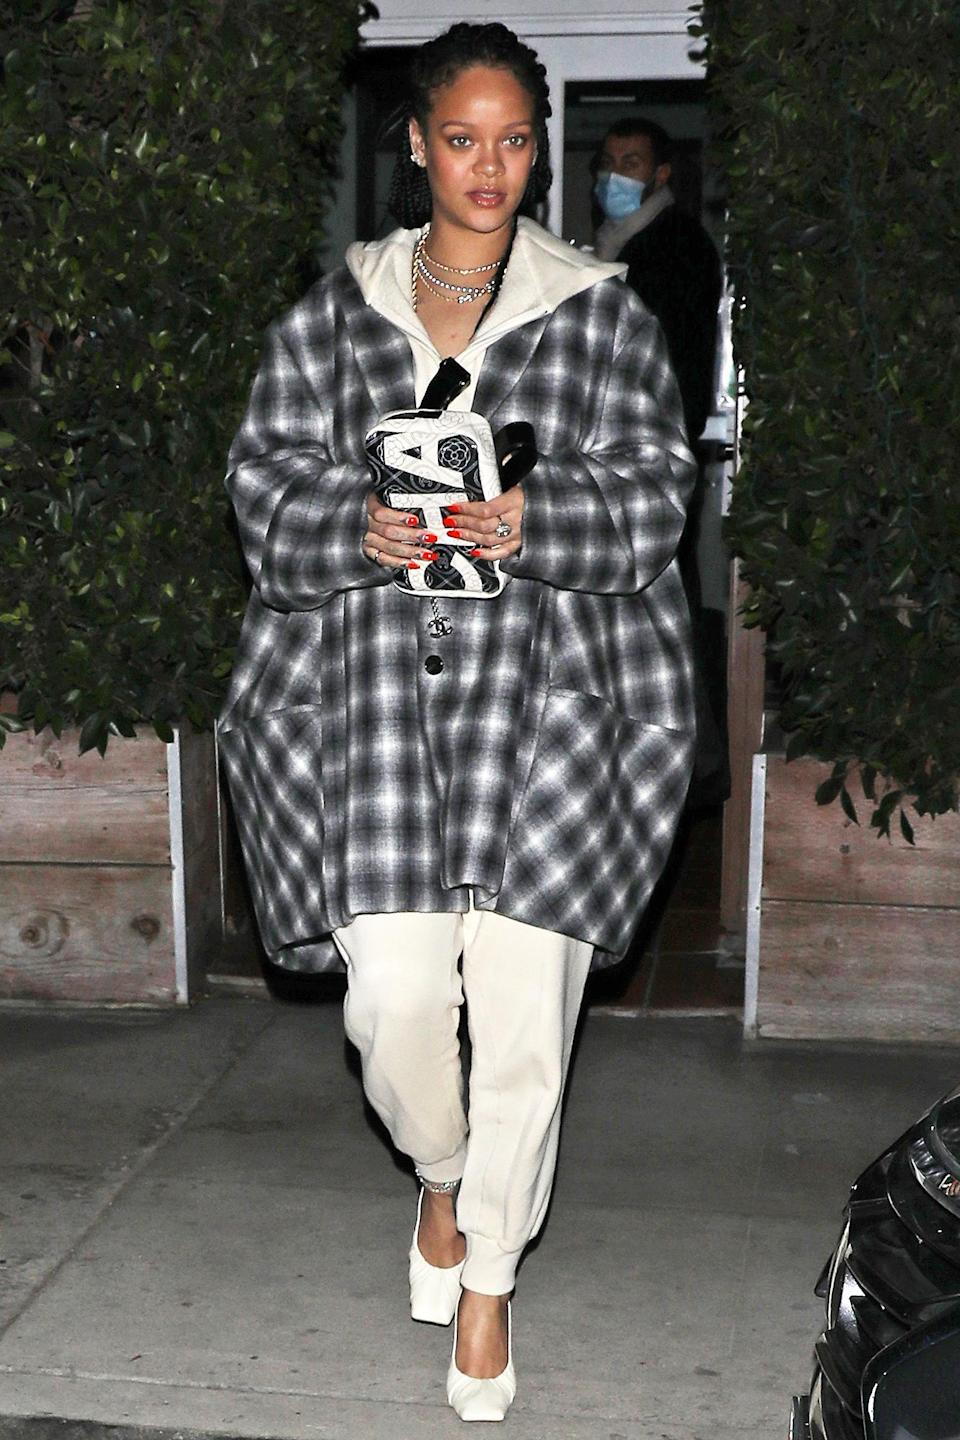 <p>Rihanna was spotted leaving Italian restaurant Giorgio Baldi in Santa Monica, California, after getting dinner with a friend. </p>